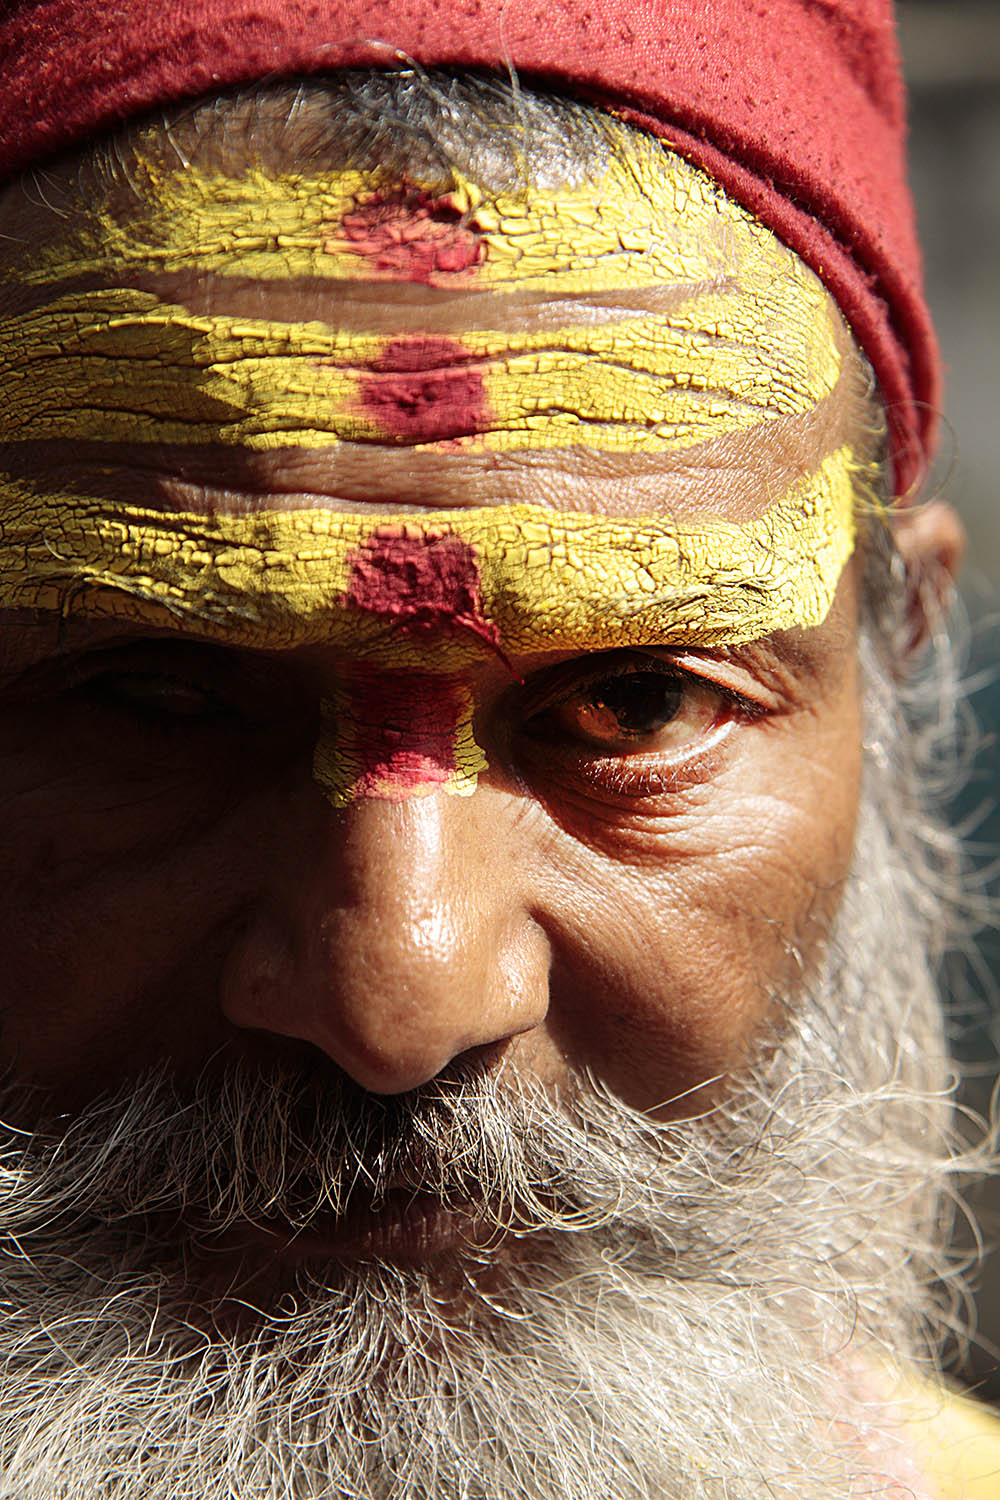 This  sādhu , or holy man, places  tikka , a red spot on the forehead, on people in Kathmandu, Nepal.  Sādhu  live on the edge of society after renouncing material goods.